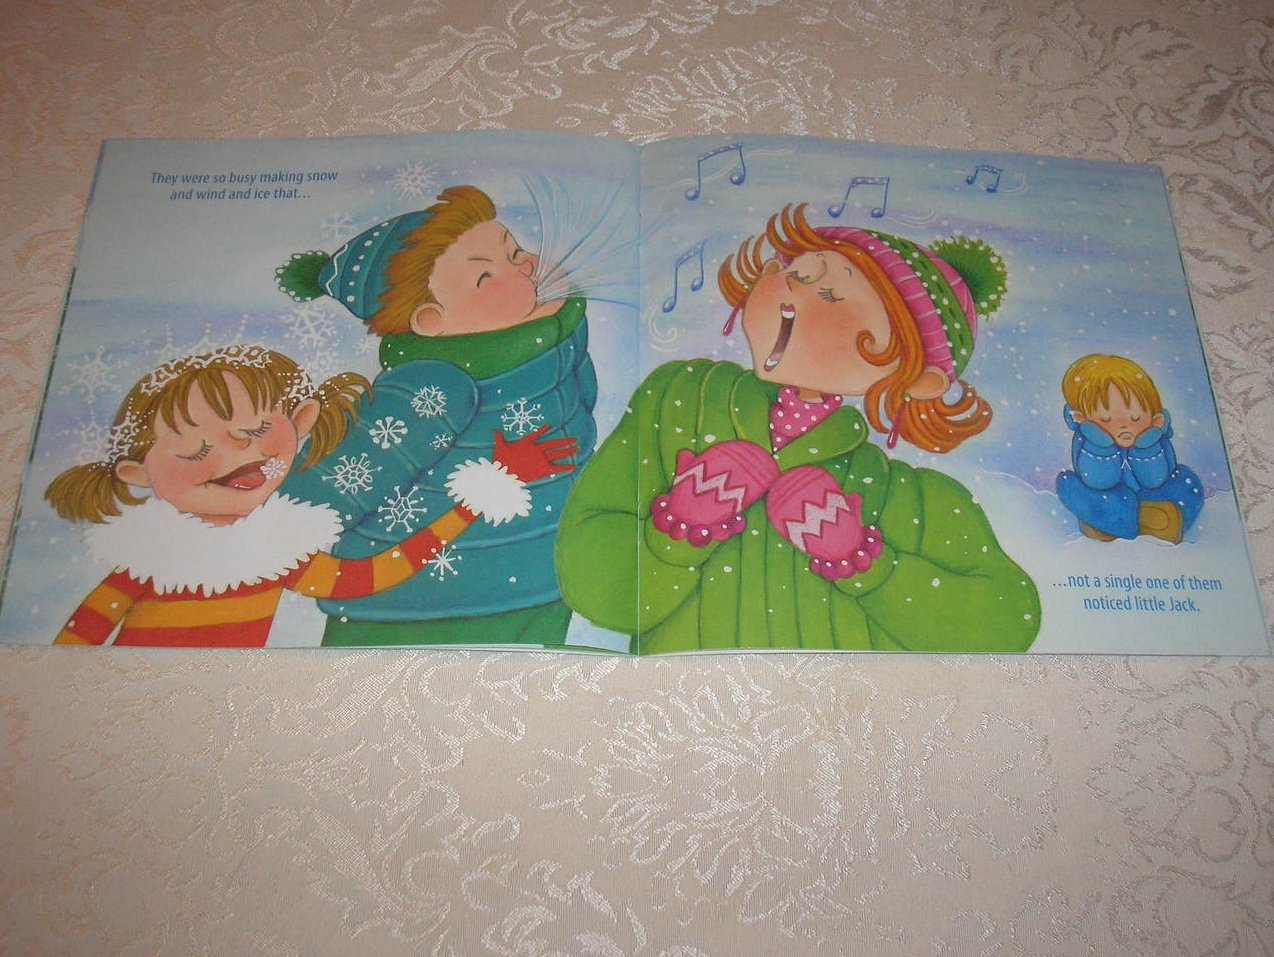 Image 3 of  The Tale of Jack Frost Marcia Thornton Jones Very Good Softcover